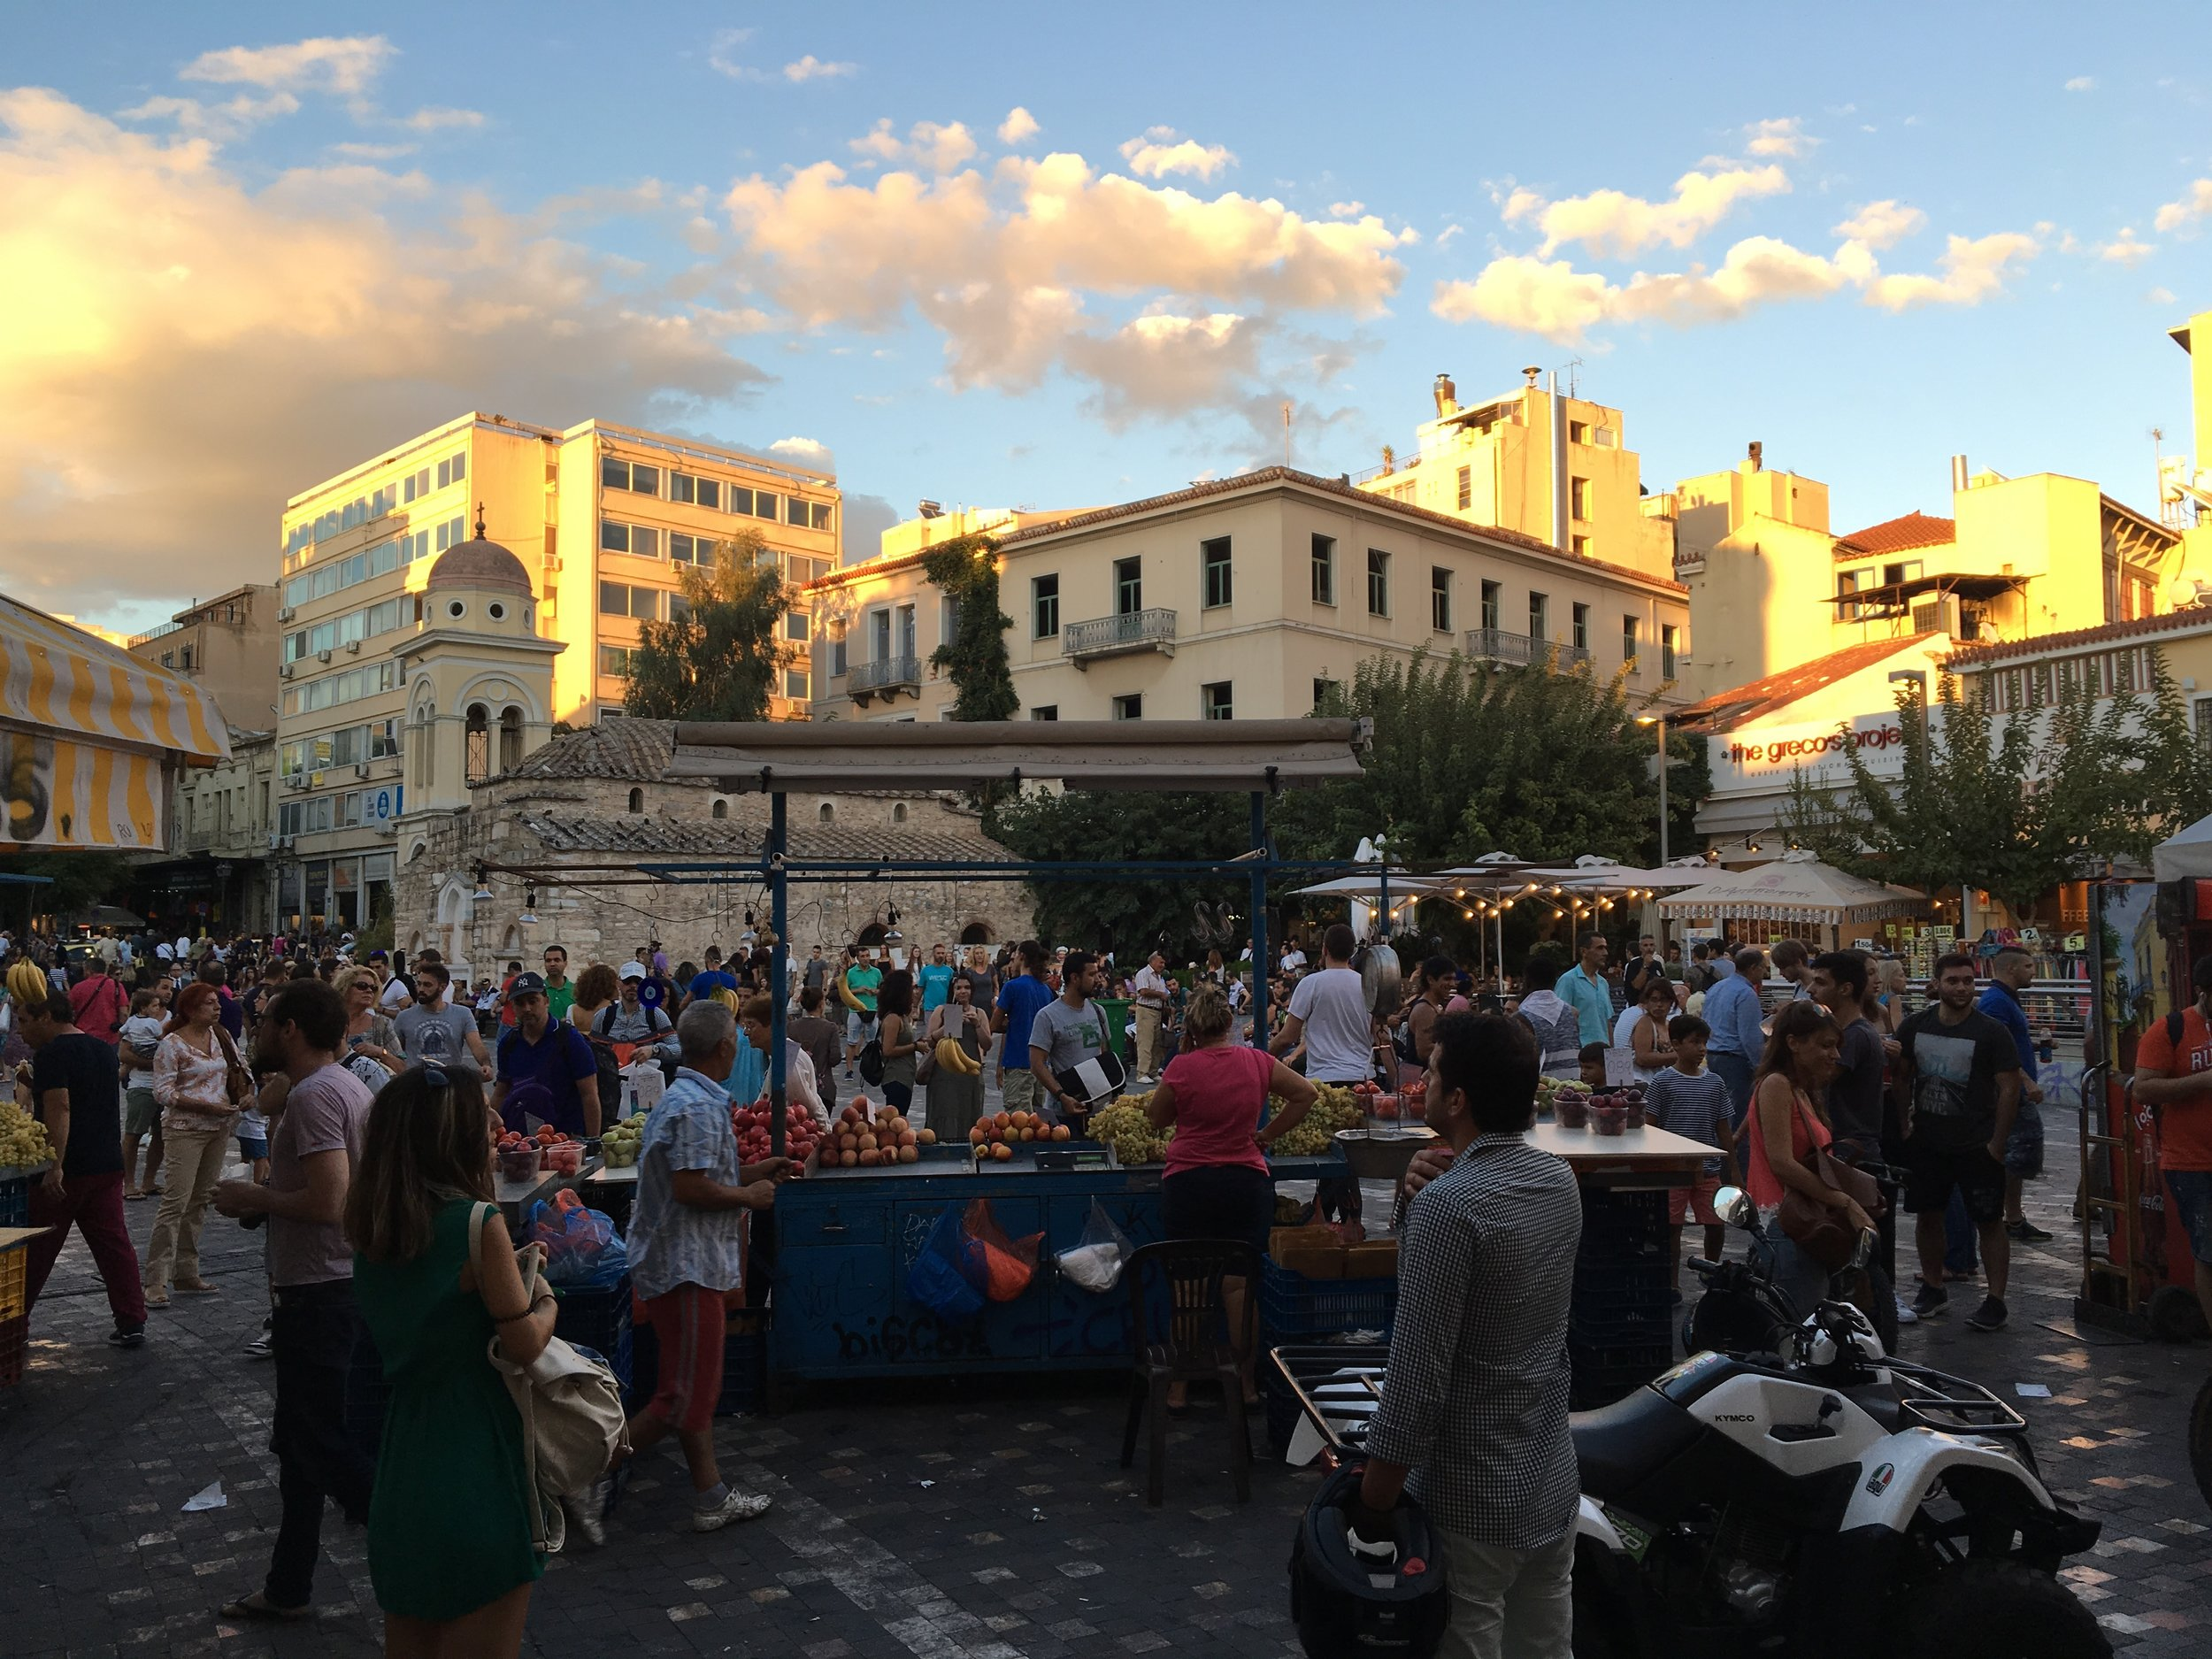 A scene from the old plateia (square) of Monastiraki in Athens.